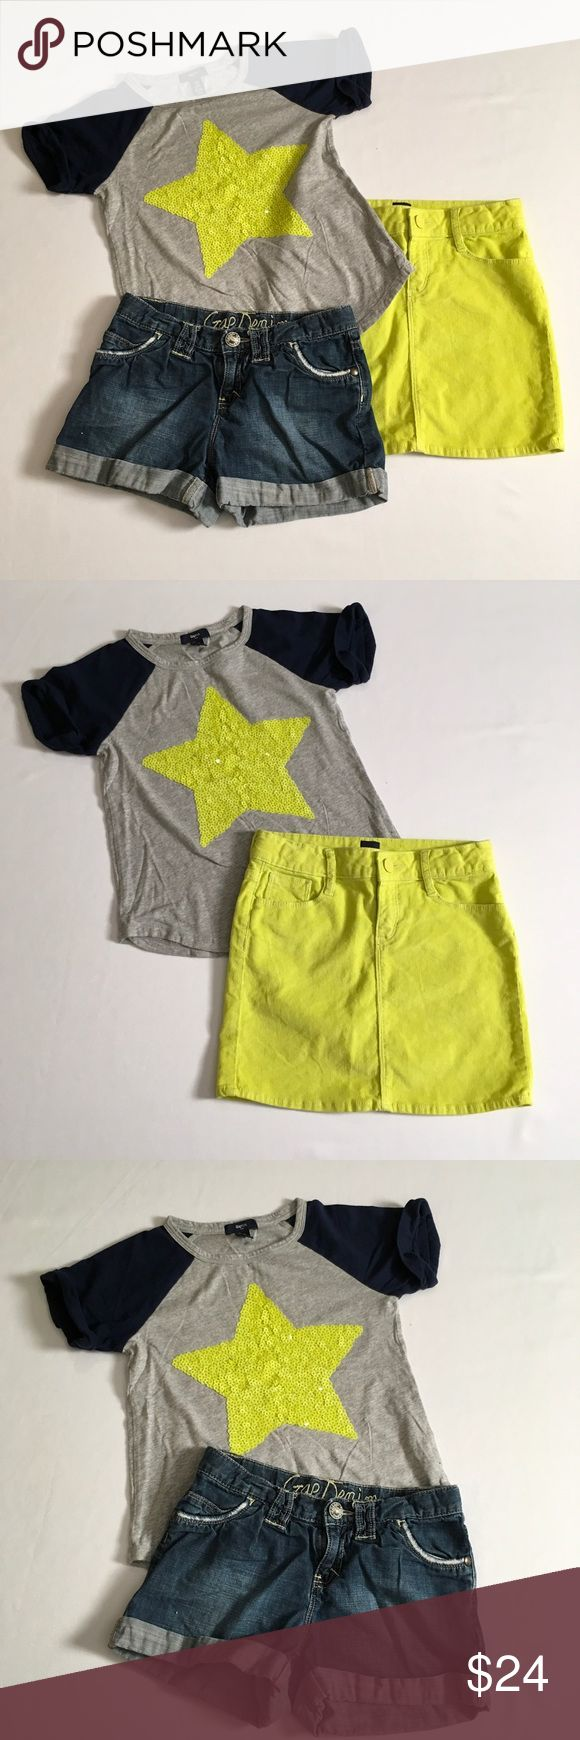 "Adorable GAP Girls Bundle Adorable 3pc Gap bundle  - GAP Top NWOT Grey & Navy with bright yellow sequin star, 100% cotton , rounded tail size 8/9 years loose fit - Gap NWOT mini skirt, very thin line corduroy. 98% cotton and 2% spandex, 5 pocket. Size 10, waist 25"" around & length from top of skirt to bottom of hem 13"" - Gap Distressed Denim Shorts, 5 pockets, adjustable waistband, rolled bottom cuff, waist 25"" around, inseam 3""  Selling as a bundle only  EUC Non smoking environment No…"